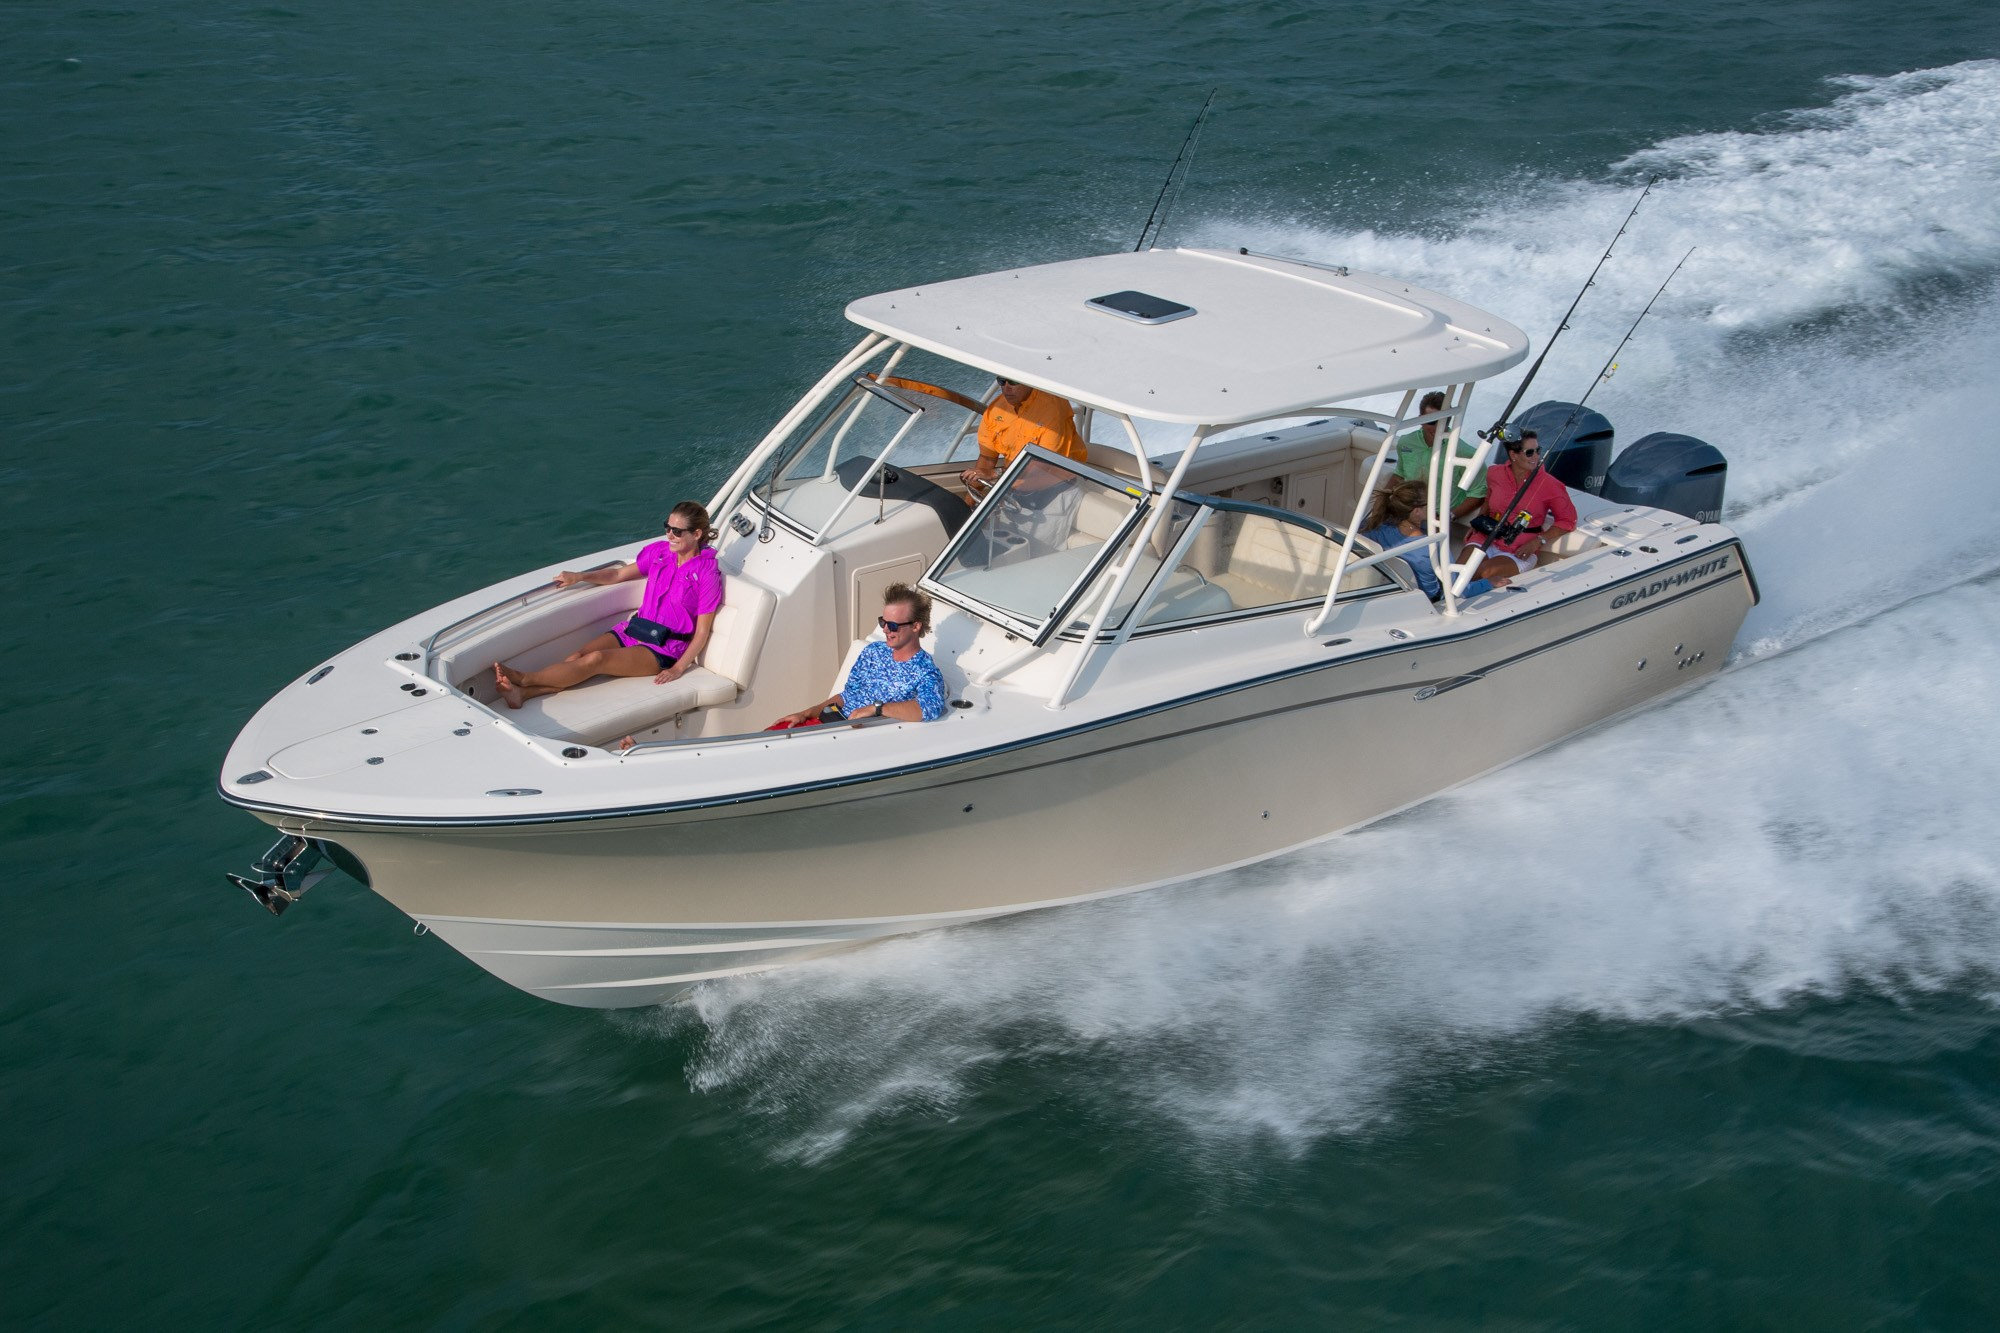 The Grady-White Freedom 307 is currently in production, but this model has been around for close to 10 years (originally launched with the name Tournament 307) so there are both new and used options on the market.